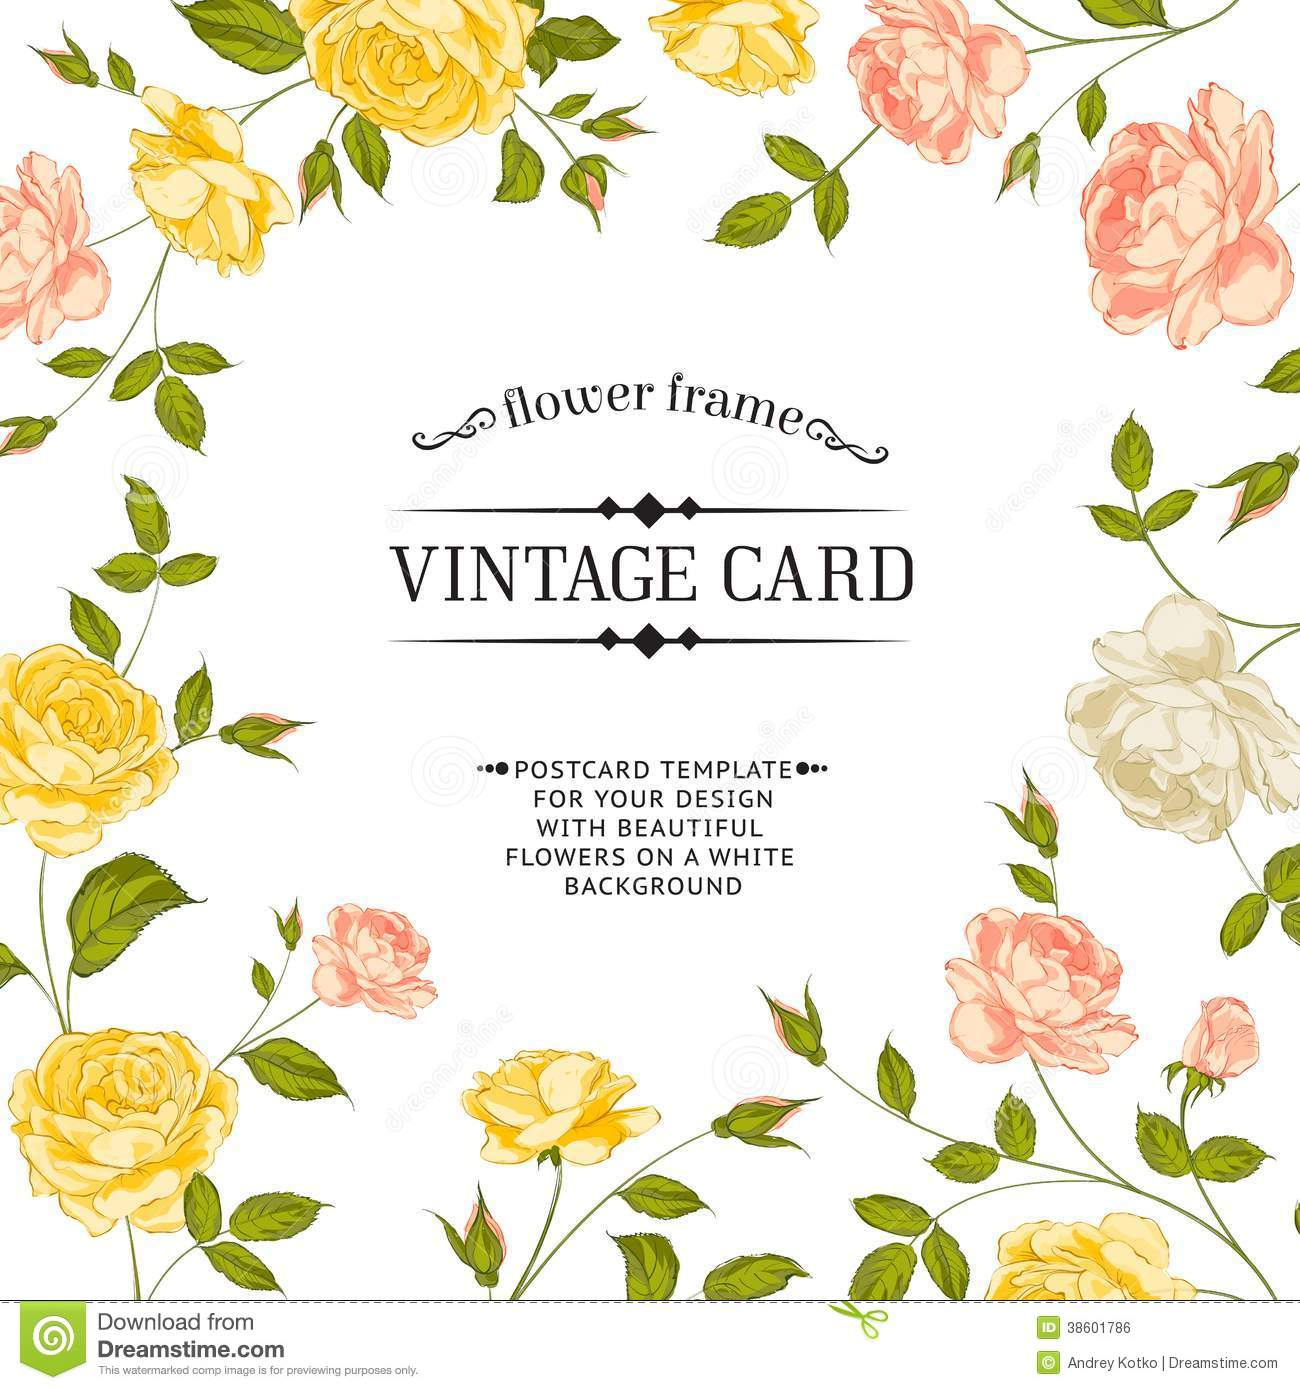 free wedding invitations vector floral wedding invitations floral frame perfect for wedding invitations royalty free stock image